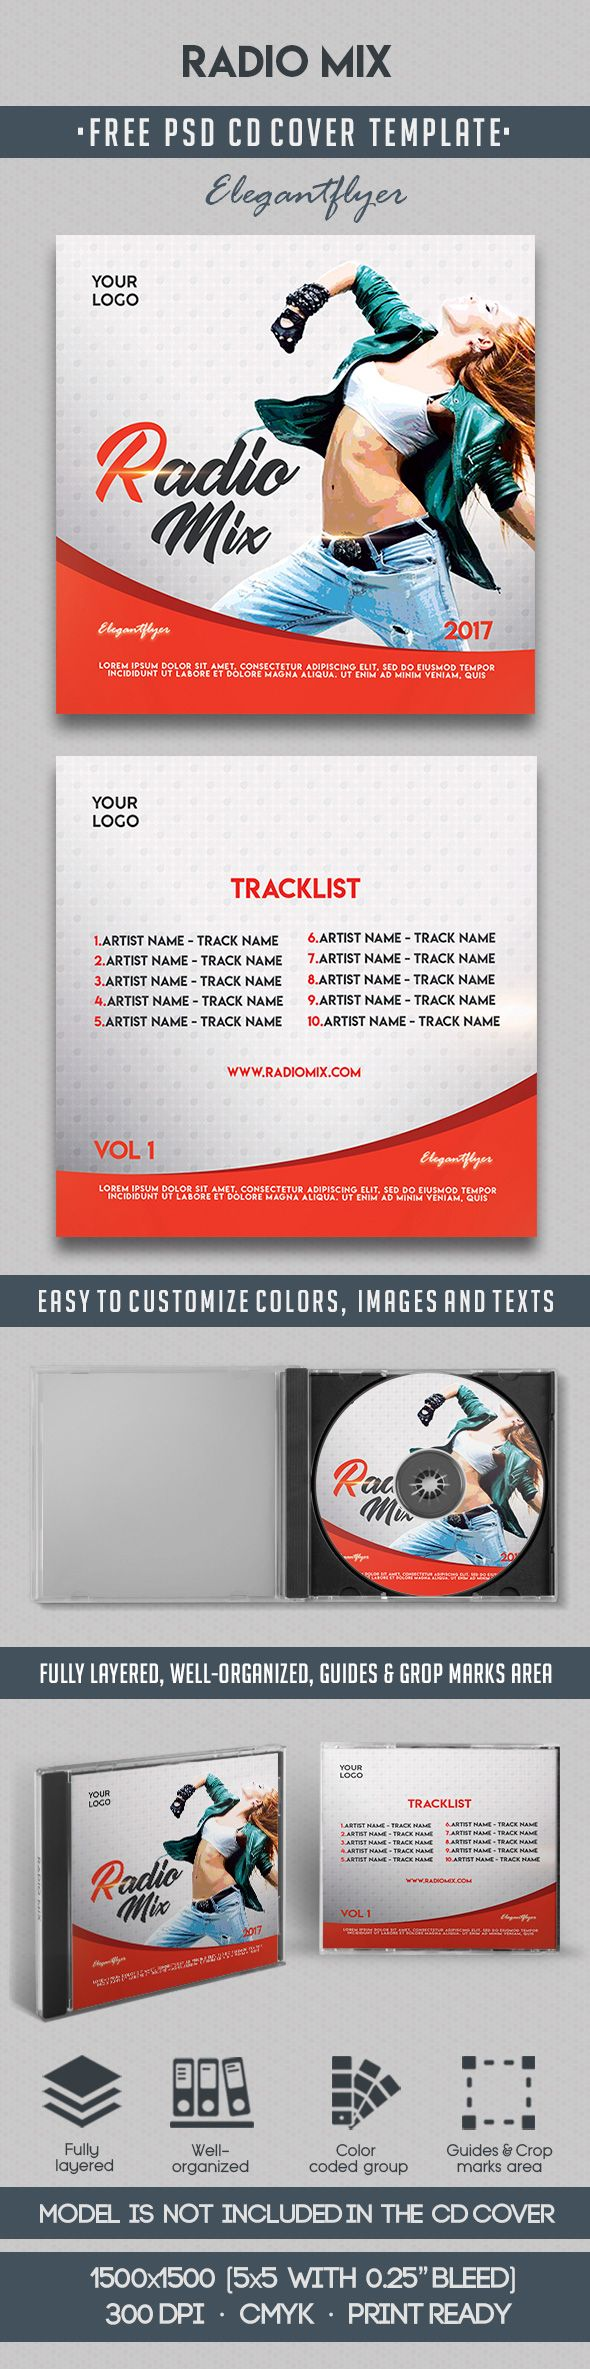 Radio Mix – Free CD Cover PSD Template